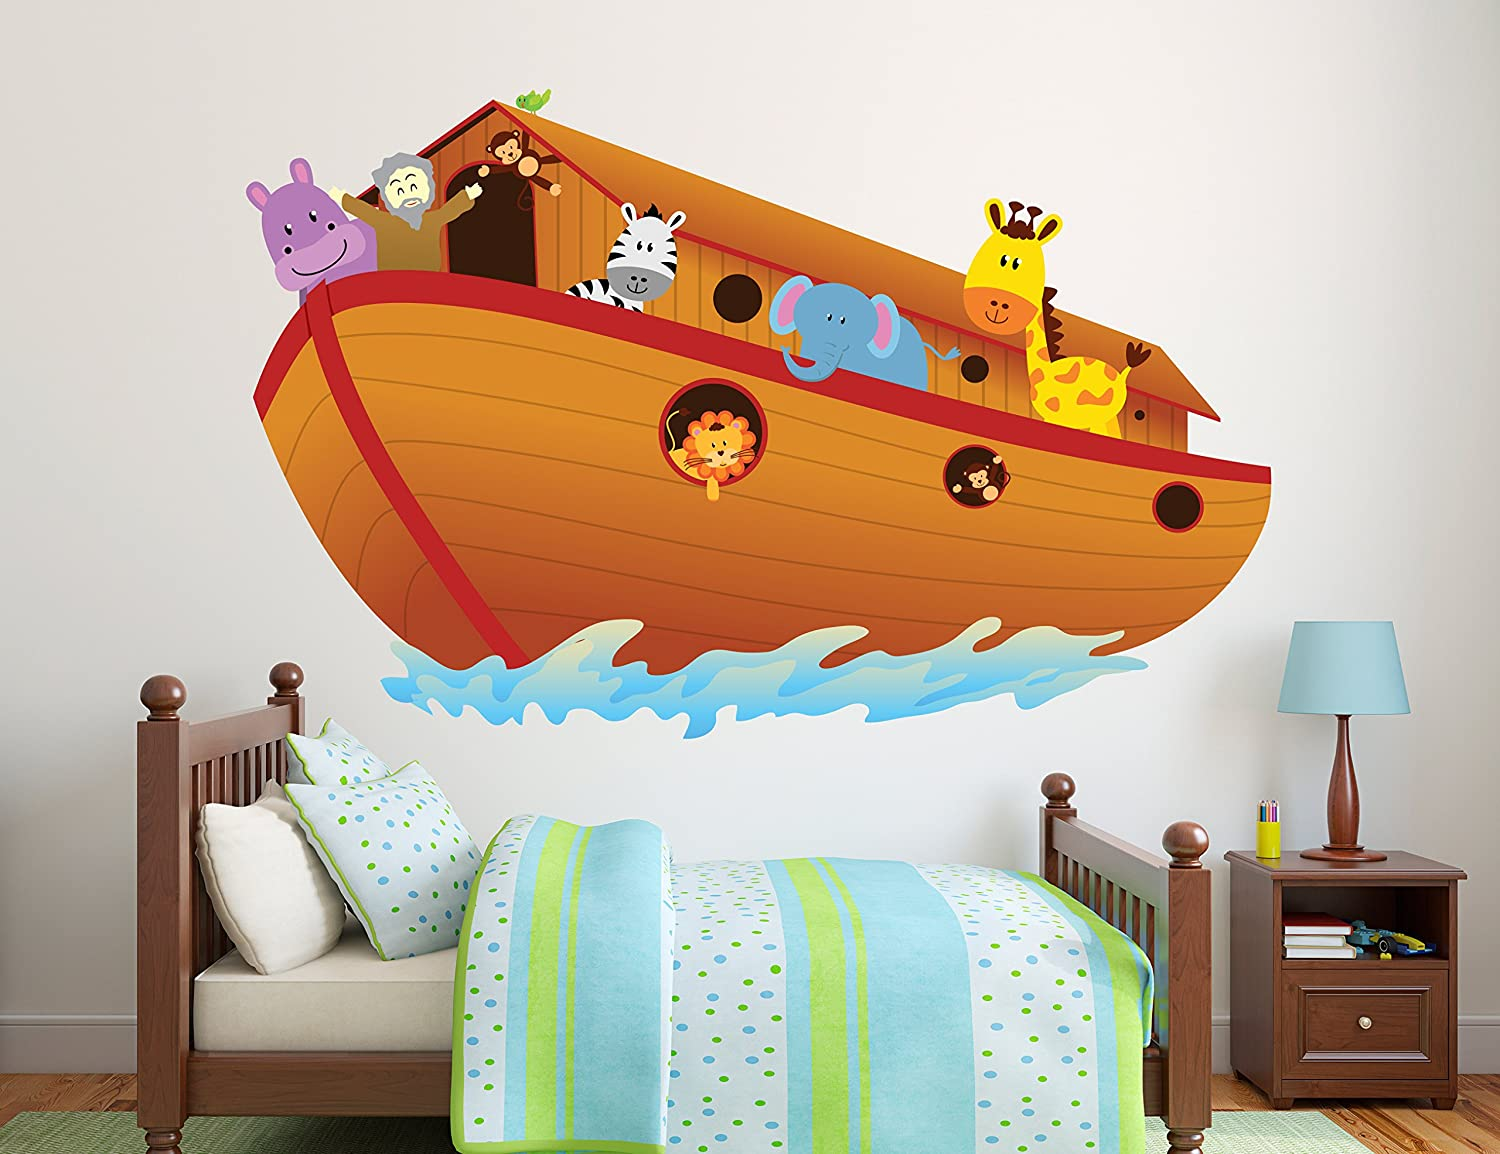 """Noah's Ark Wall Decal - Baby Boy Girl - Colorful Design Mural Wall Decal Sticker For Home Car Laptop (Wide 28"""" x 18"""" Height)"""